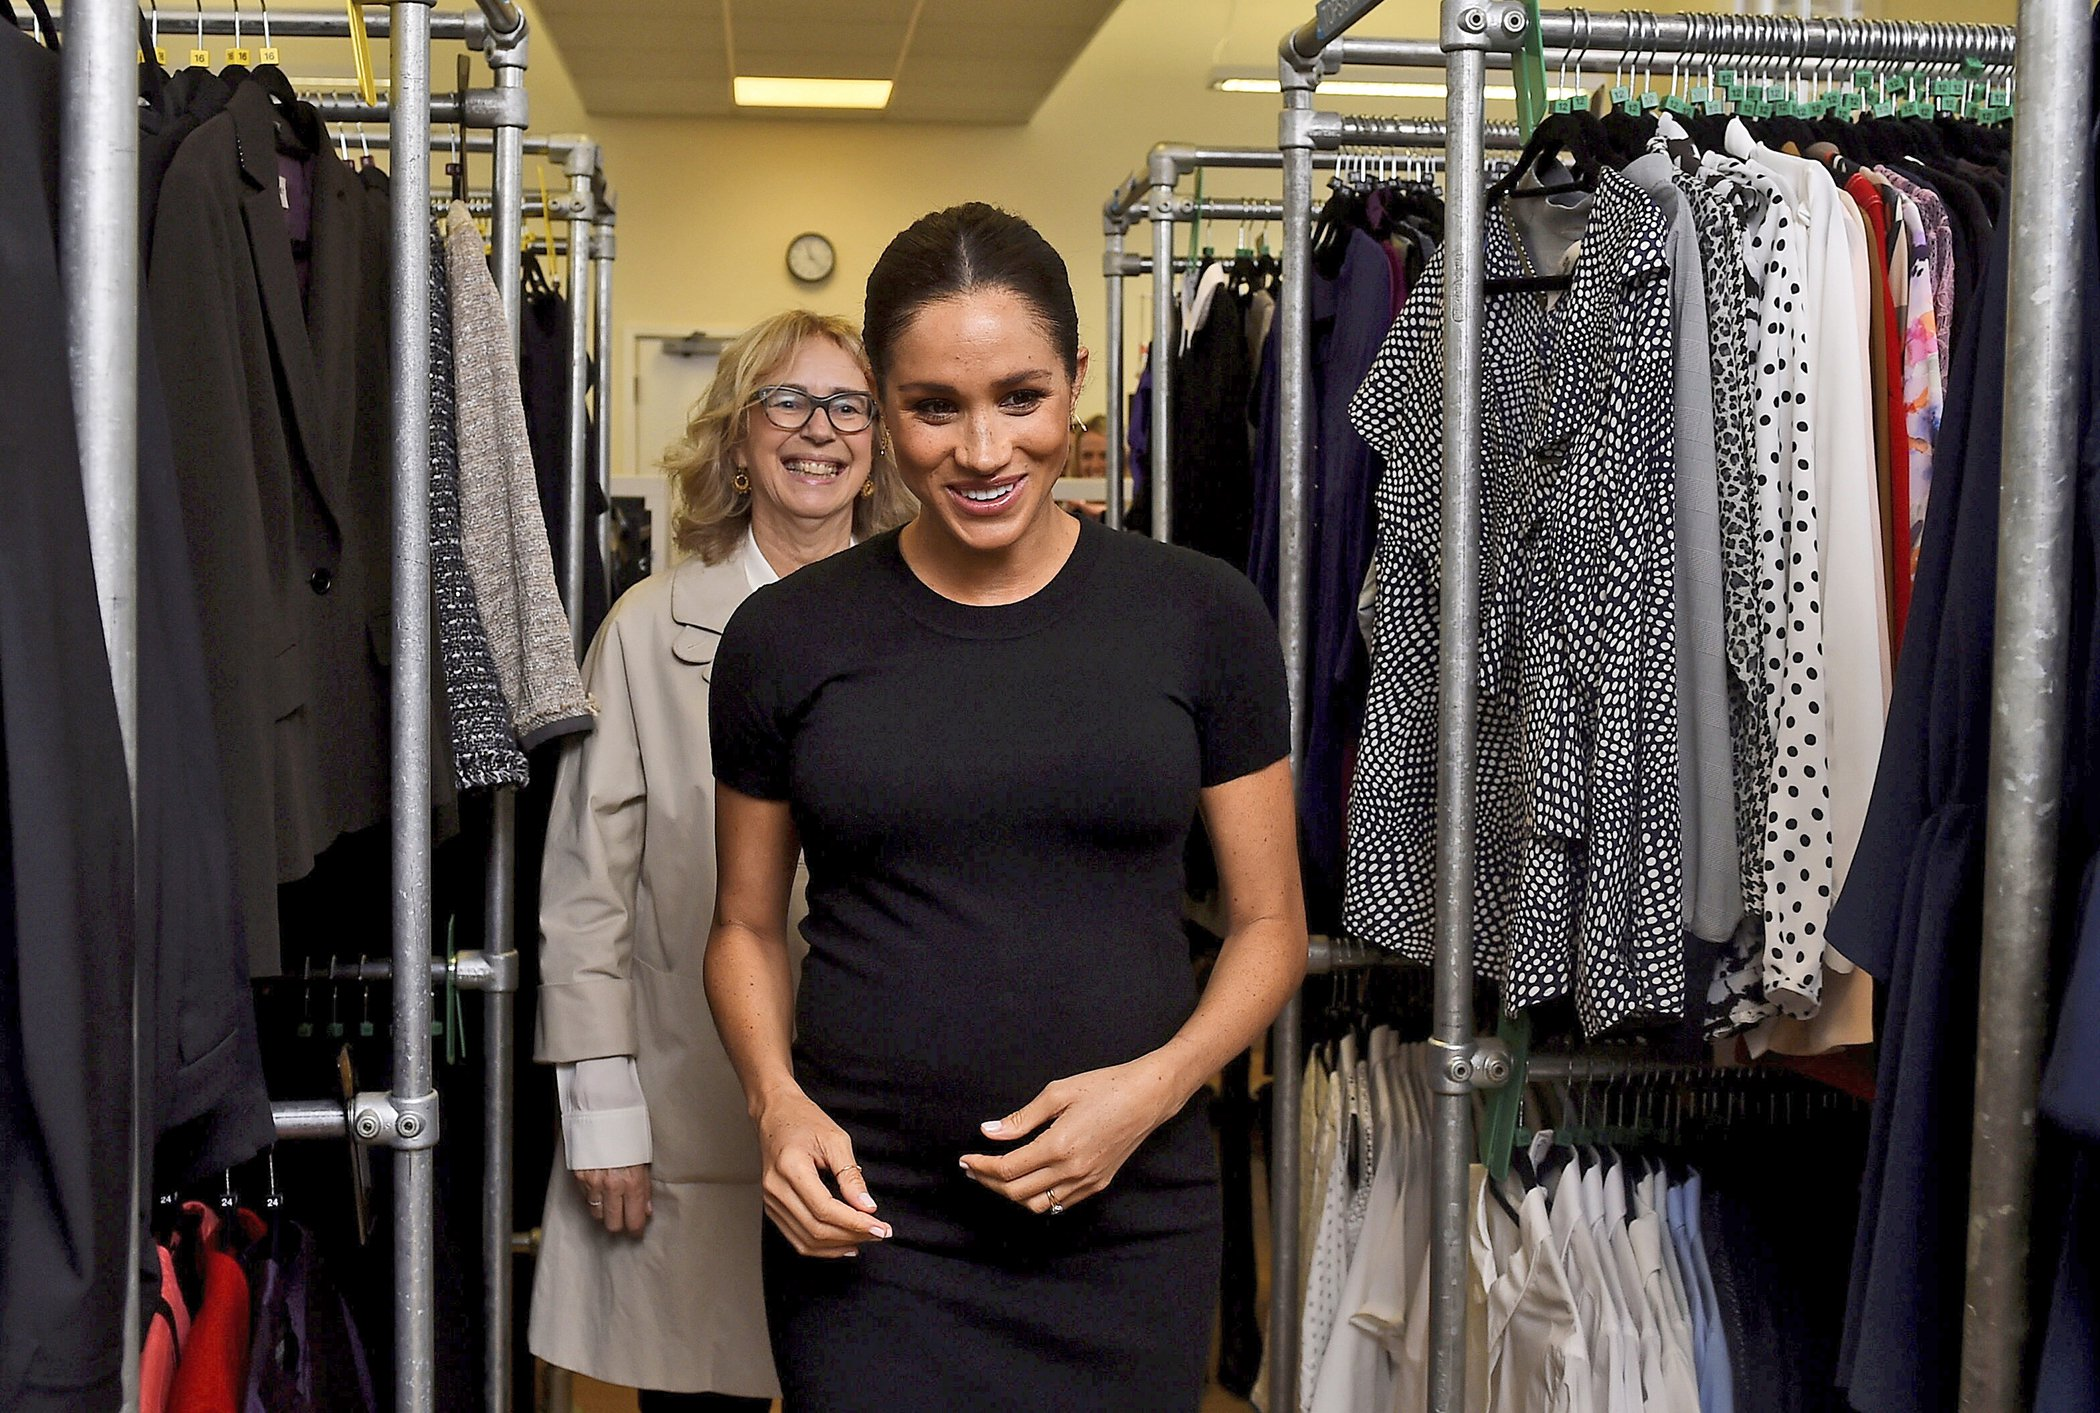 Meghan-Markle-Smart Works-Full-Frame.jpg